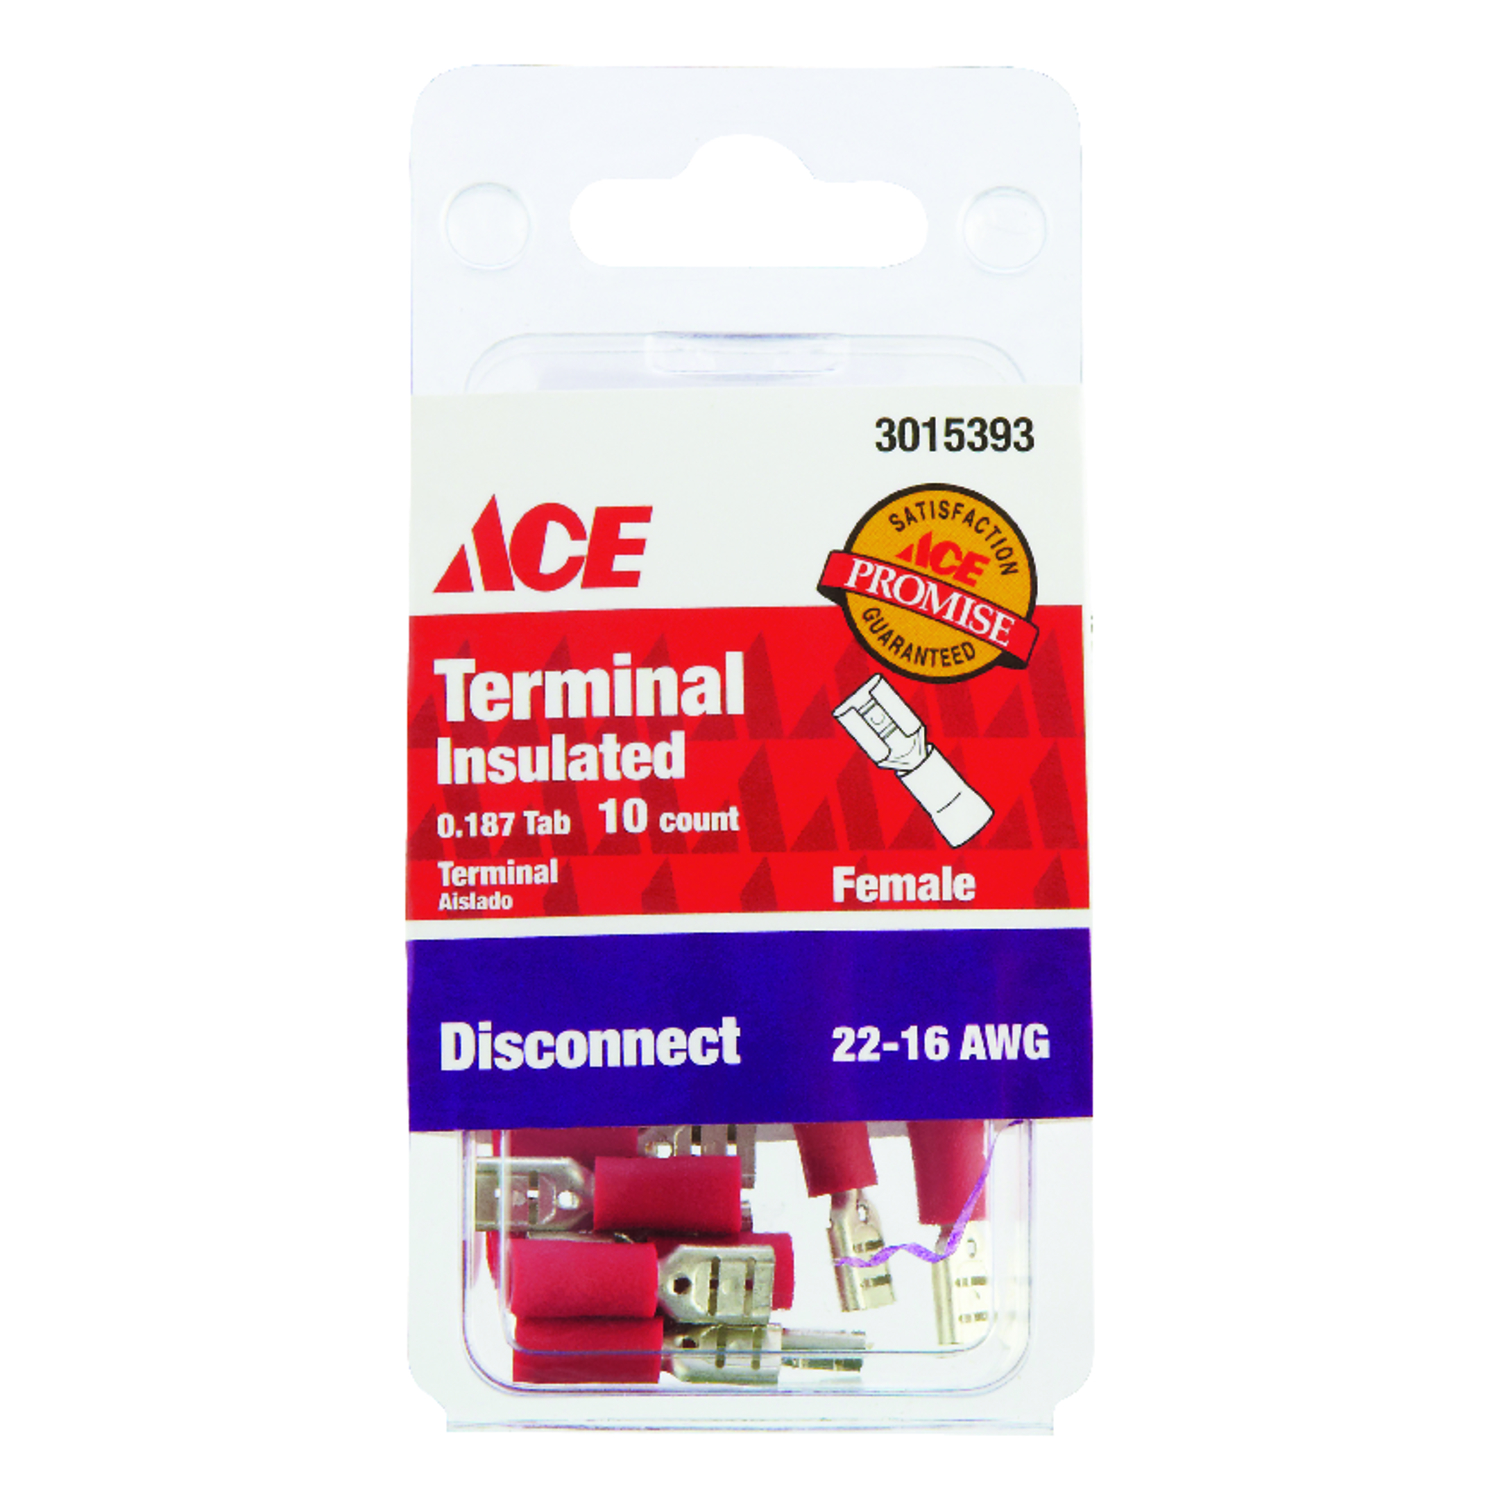 Ace  6  22-16 AWG Female Disconnect